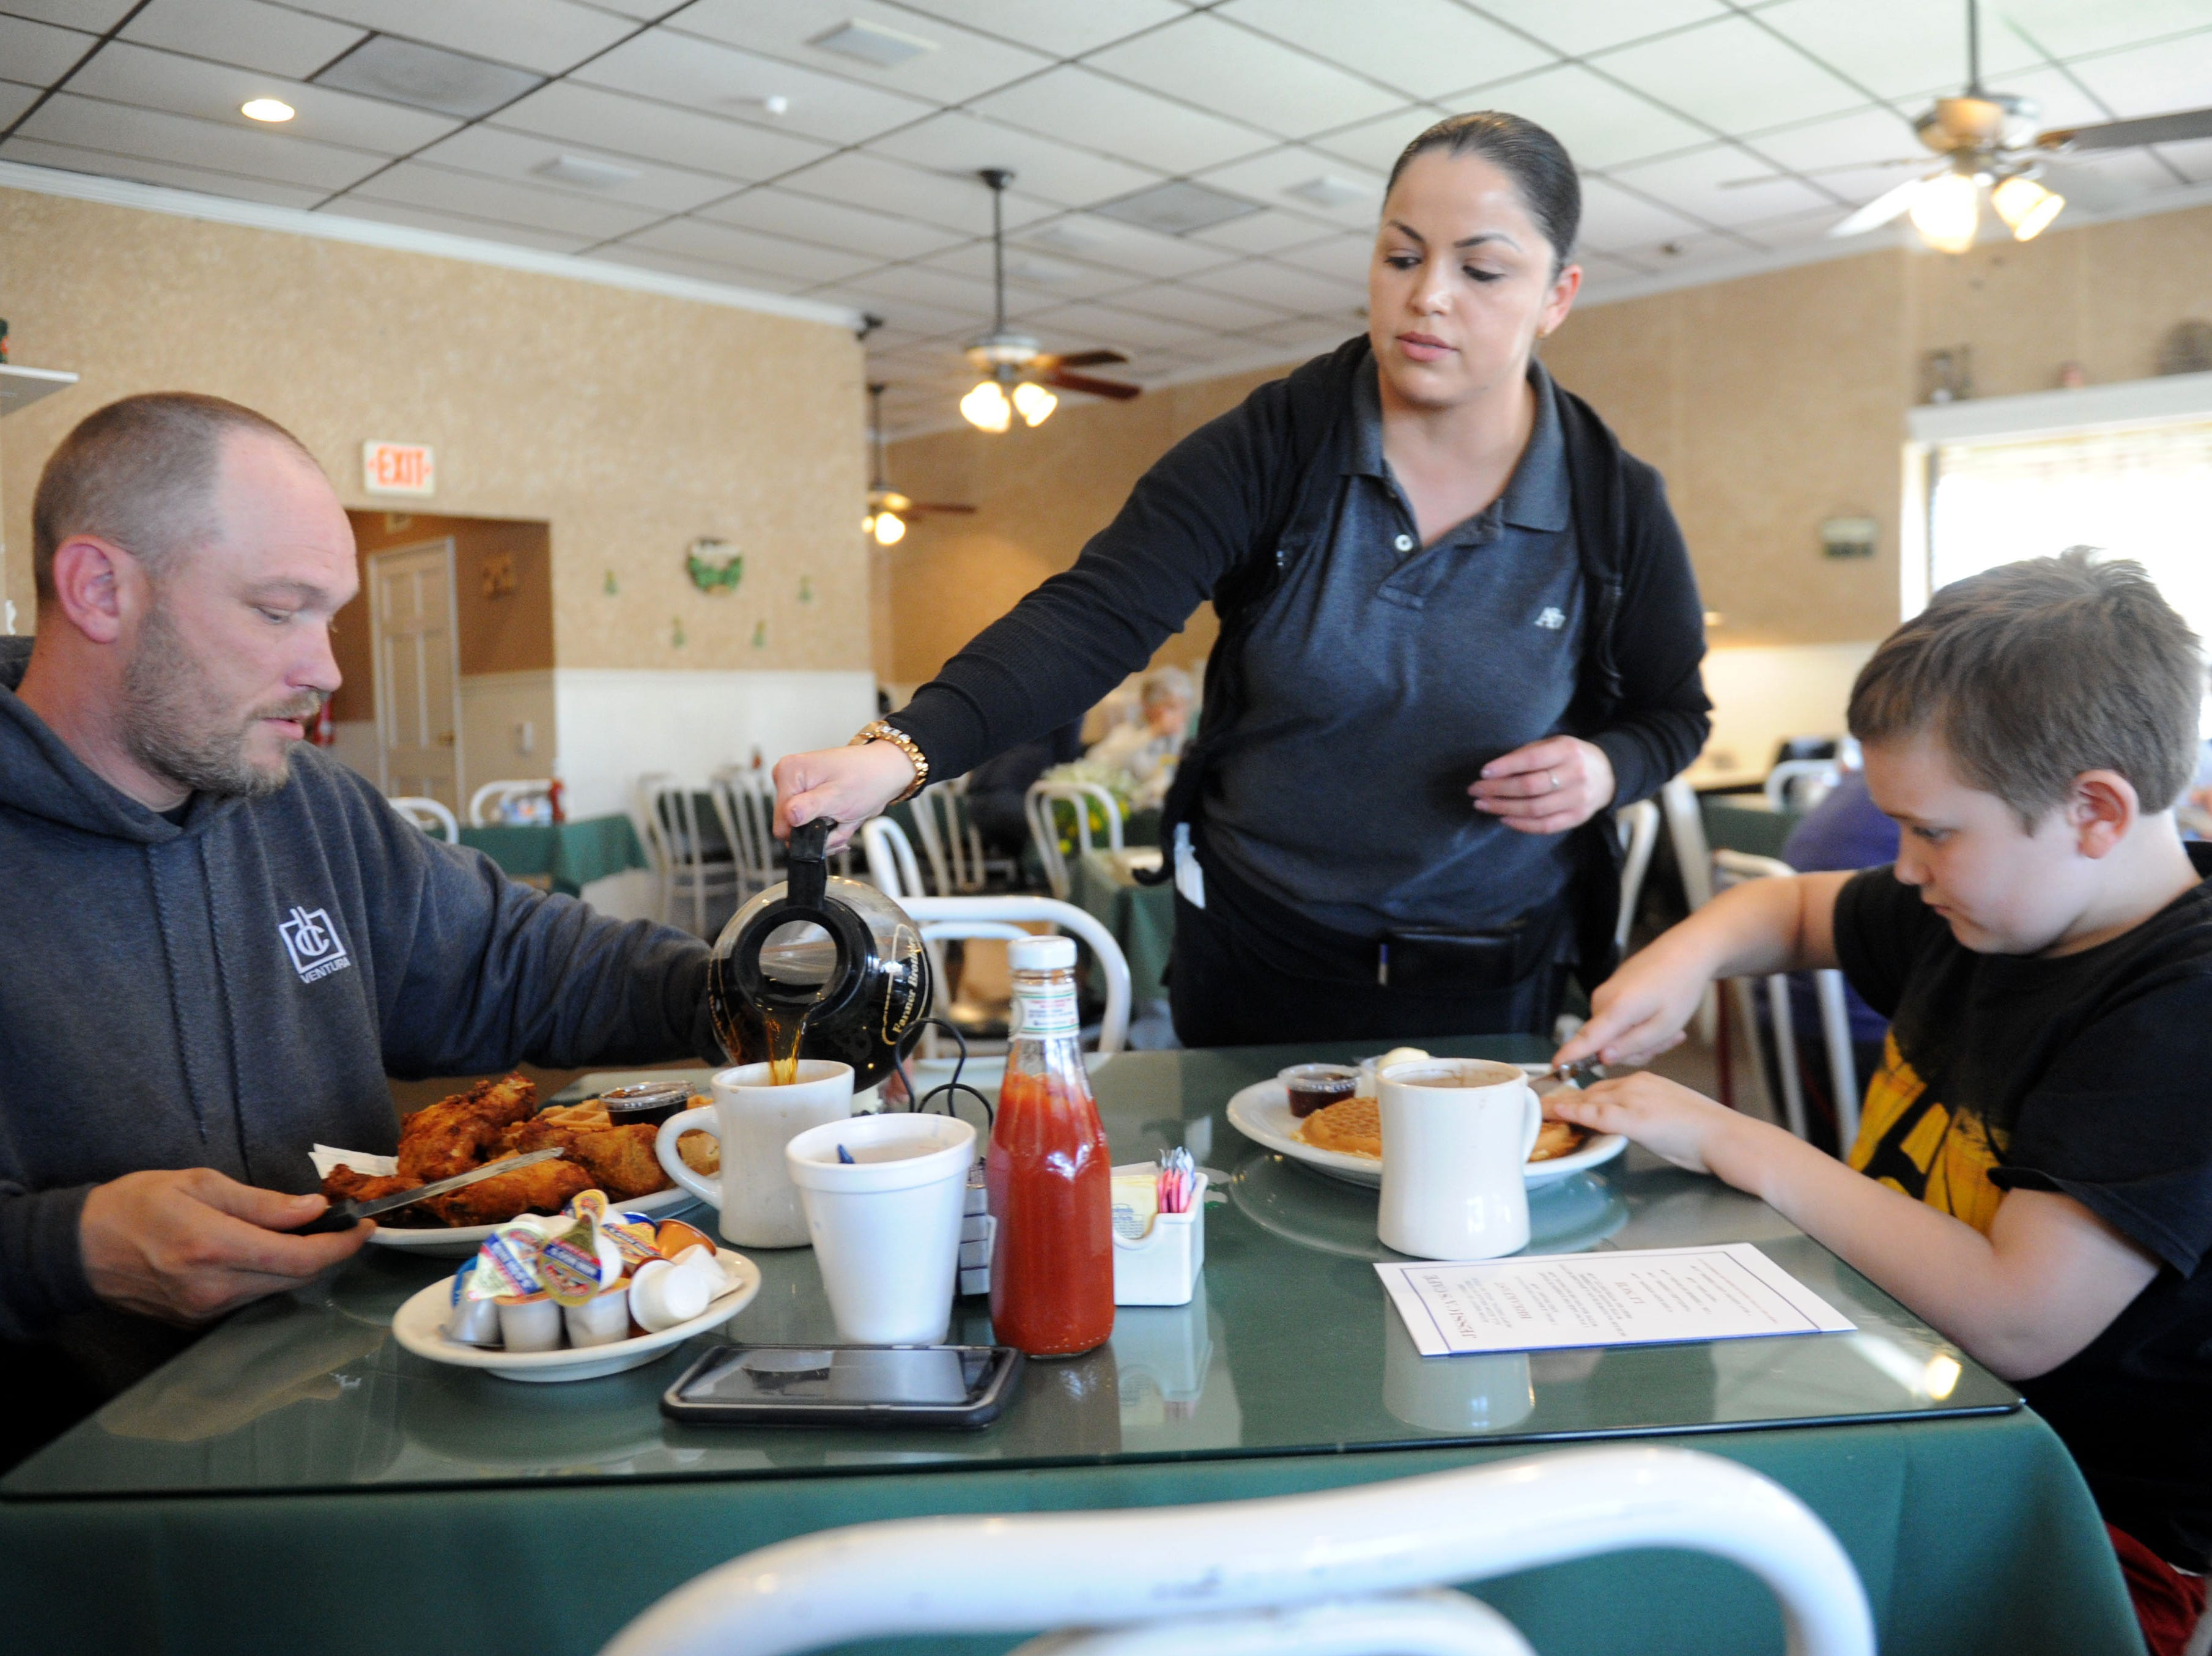 Michael Aldridge and his son Camren Aldridge, 9,  are helped by waitress Karina Martinez at Jessica's Cafe in Camarillo.